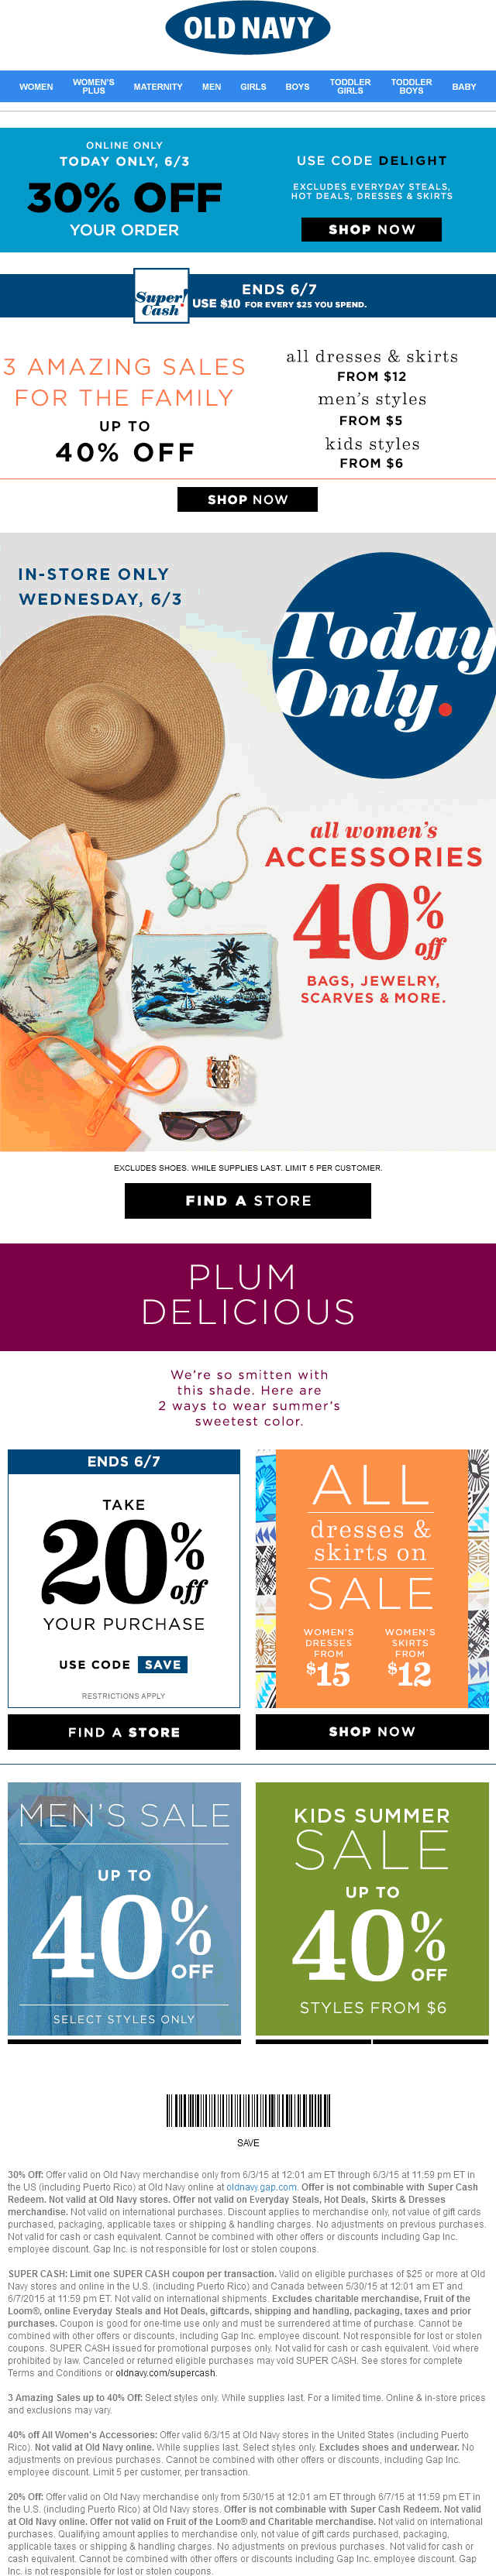 Old Navy Coupon July 2018 40% off womens accessories at Old Navy, or 30% off the tab online via promo code DELIGHT